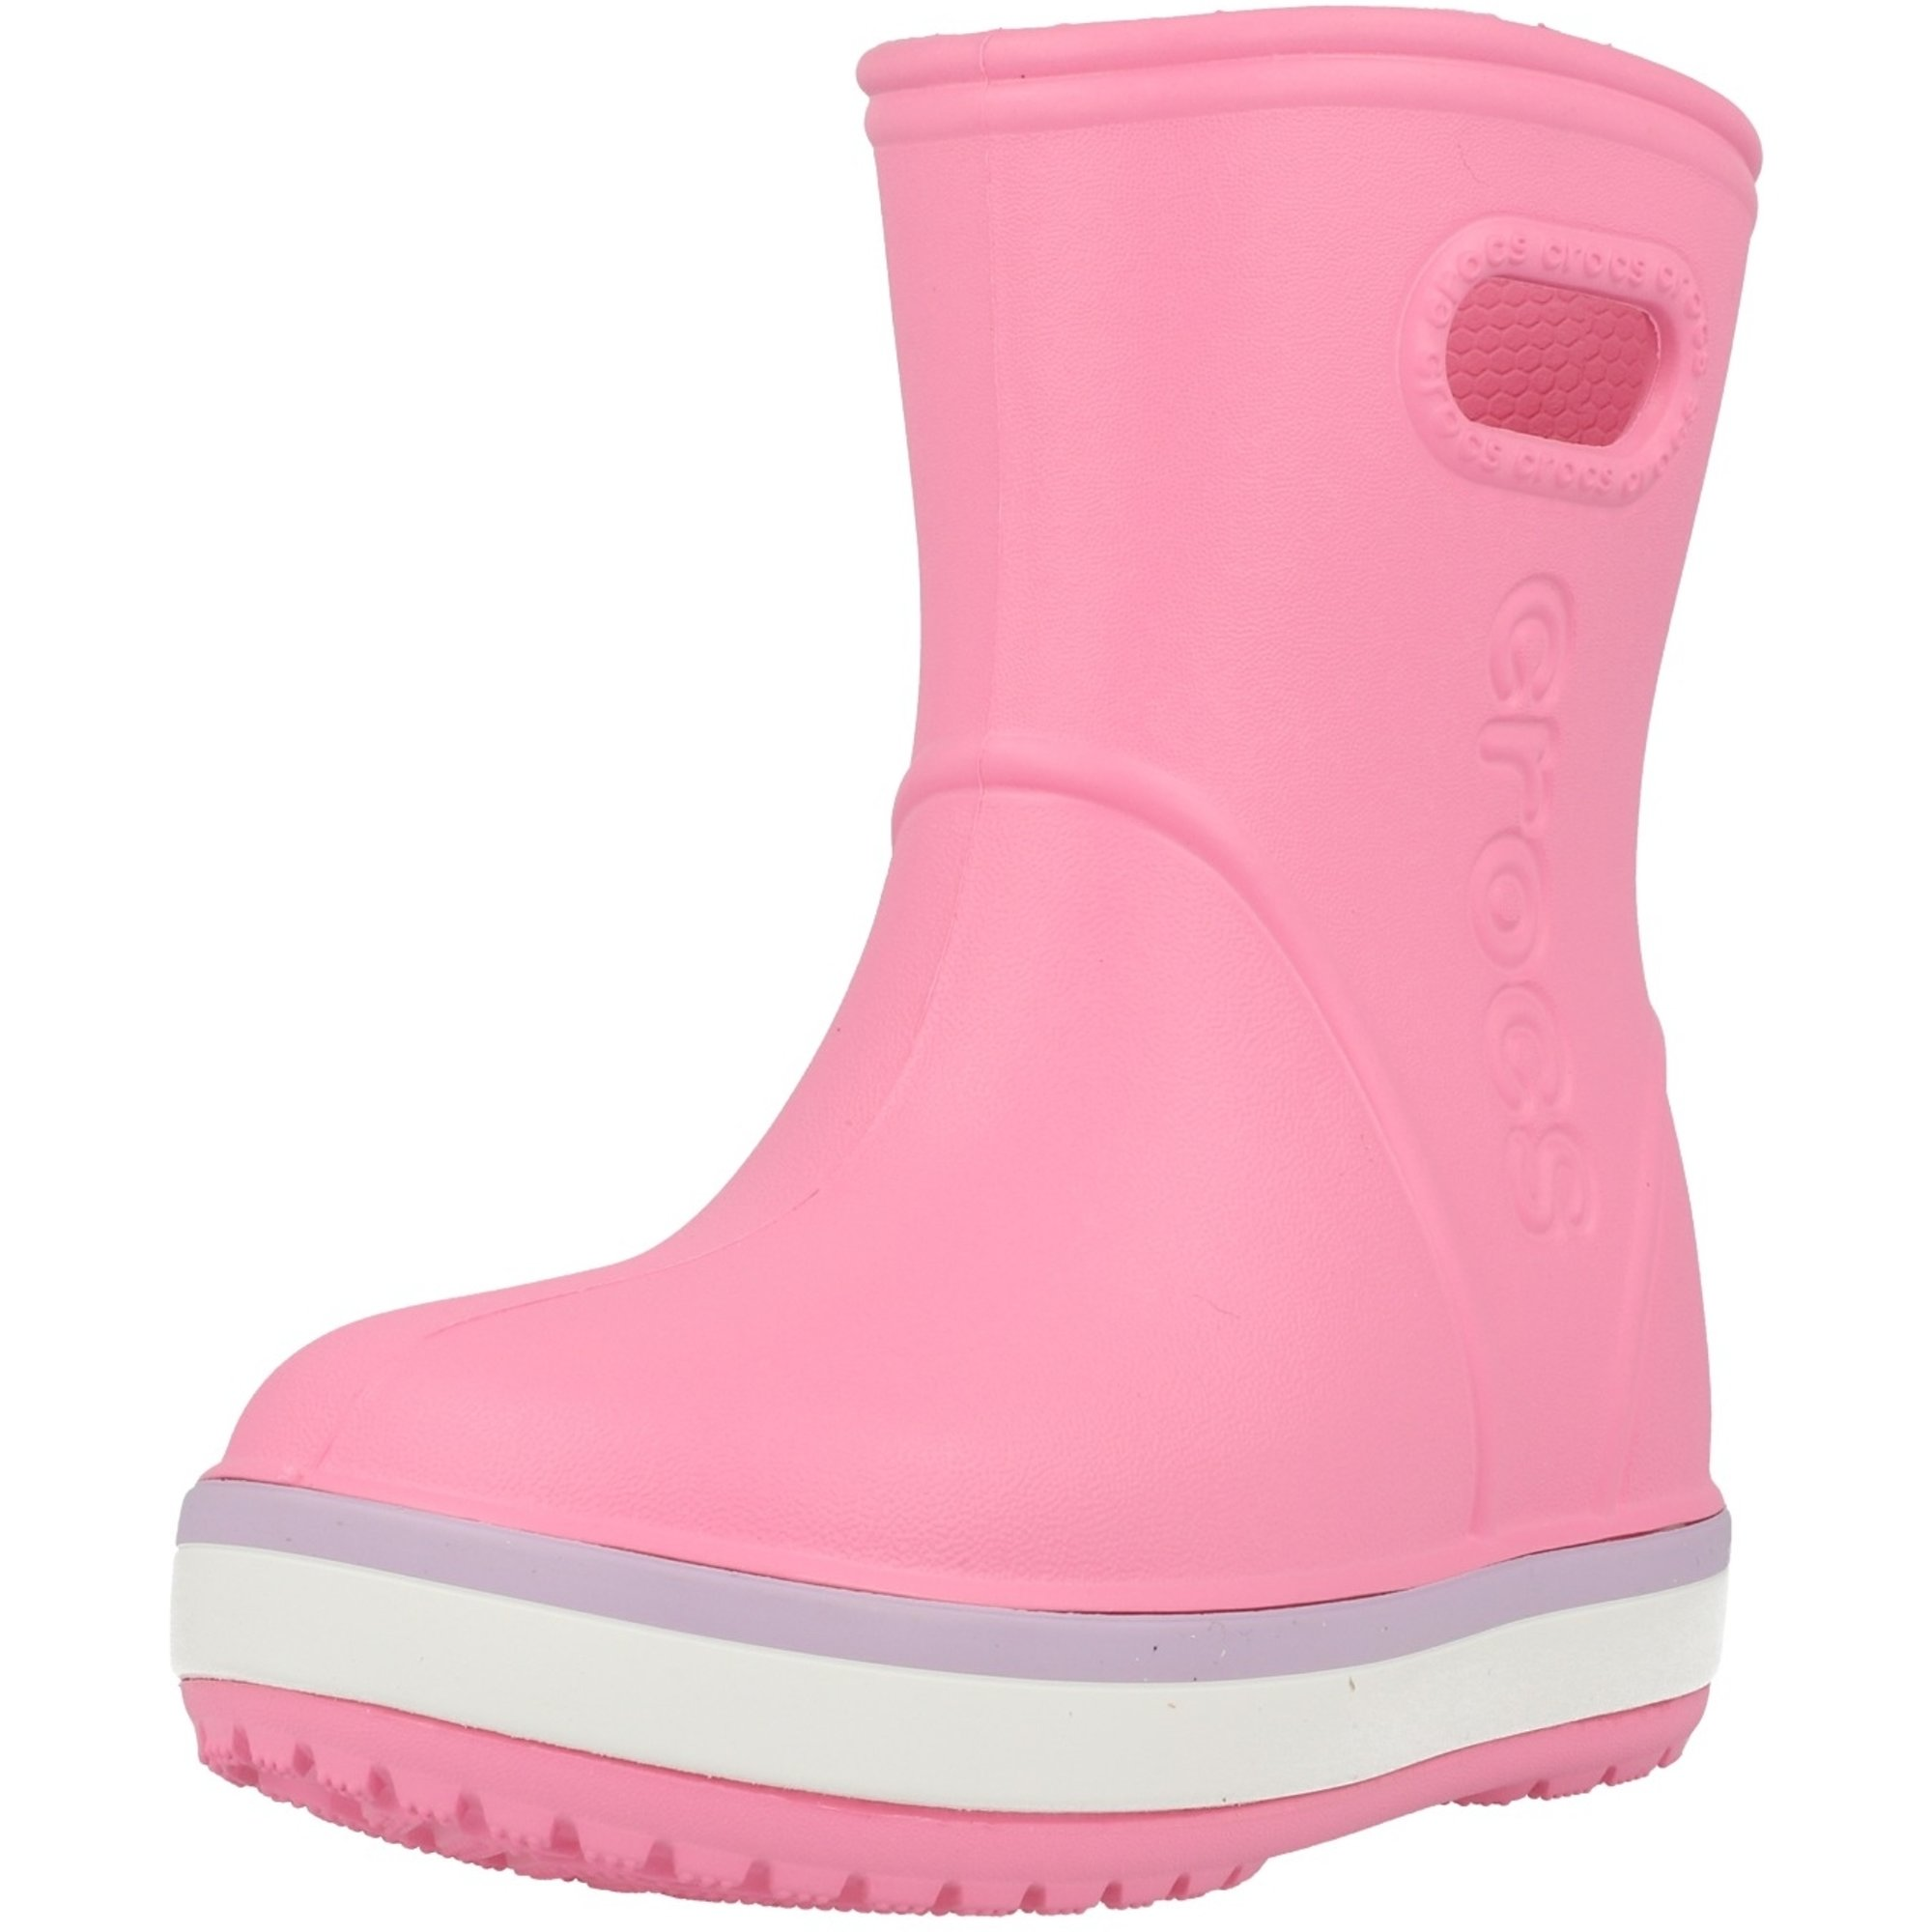 Crocs Kids Crocband Rain Boot Pink Lemonade/Lavender Croslite